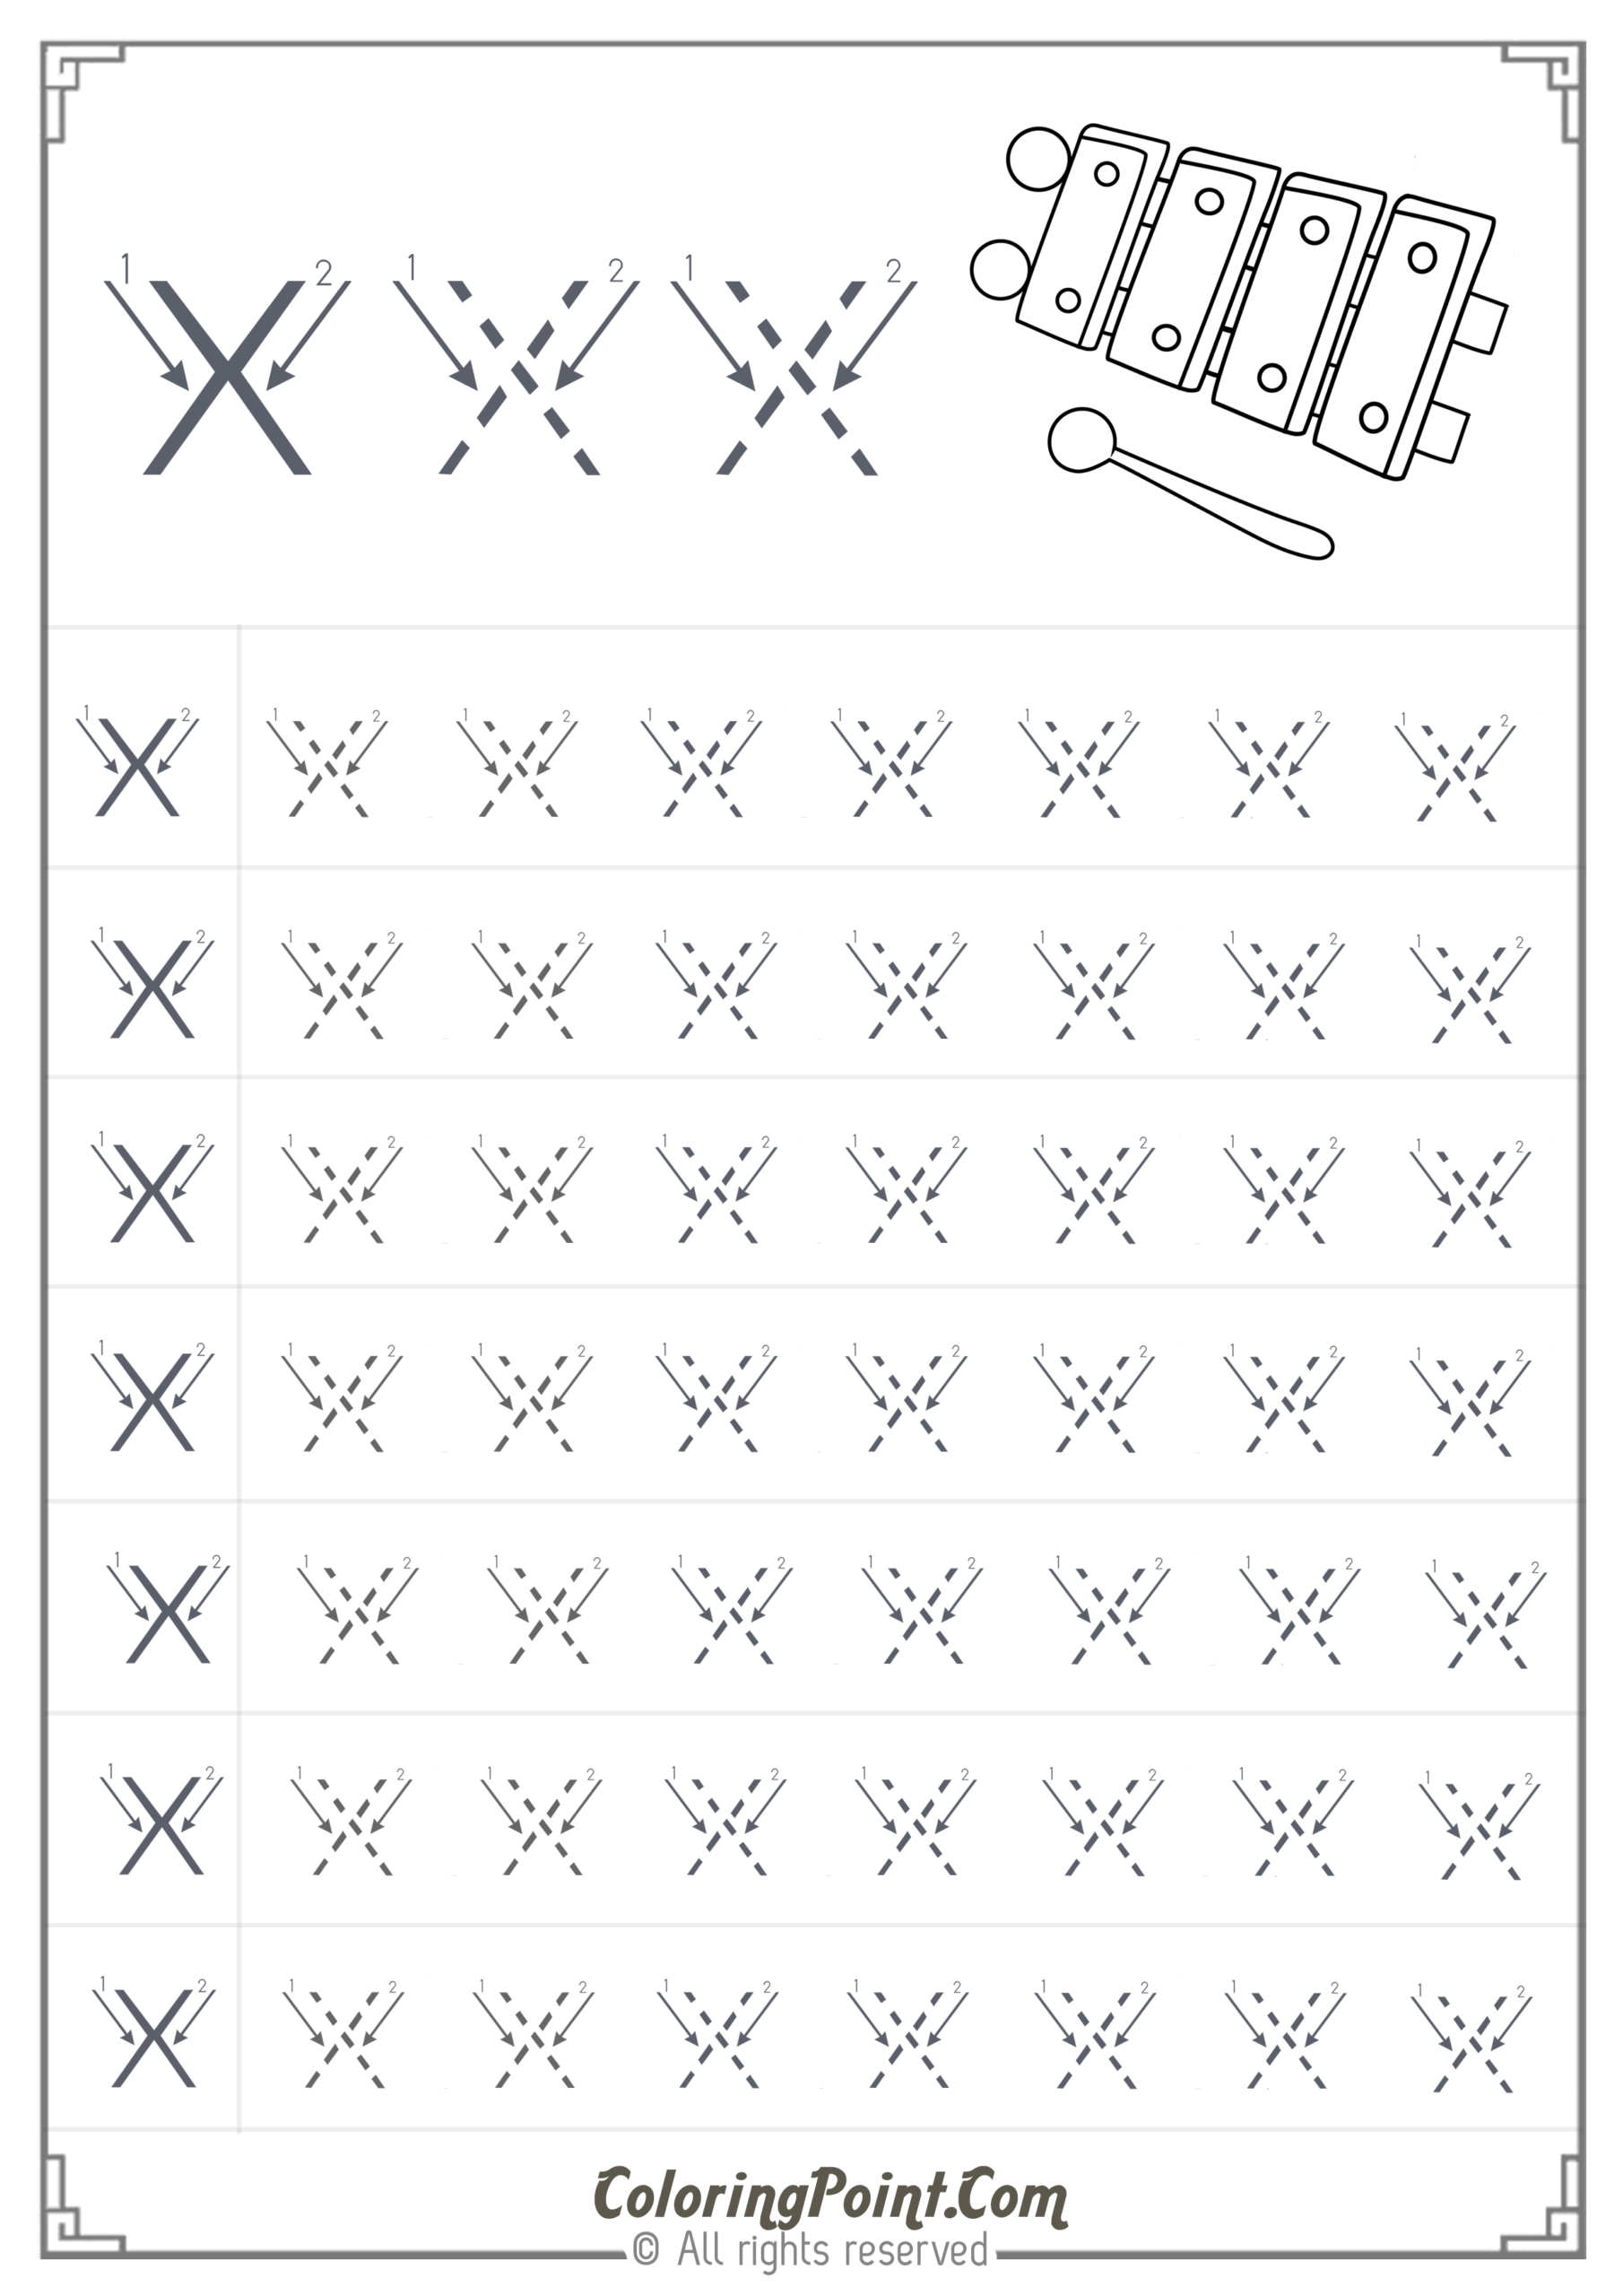 Free Printable Tracing Letter X Worksheets For Preschool regarding Tracing Letter X Worksheets